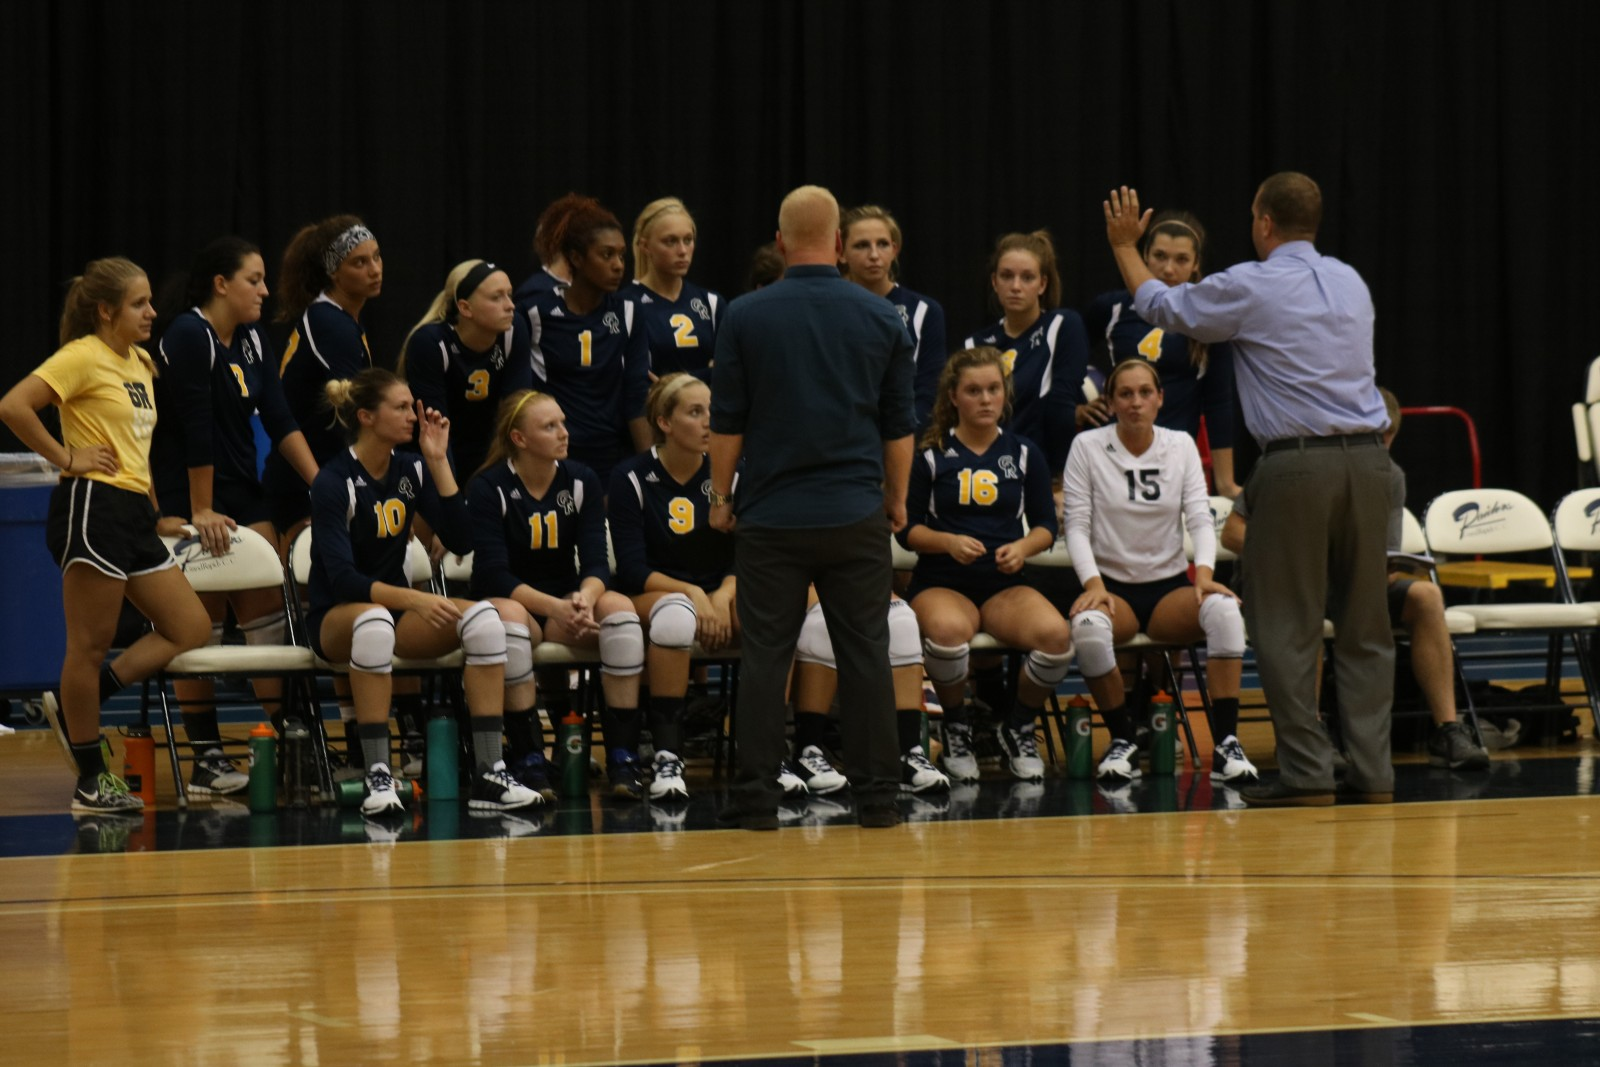 Head Coach Chip Will (right) and Assistant Coach David Rawles (left) talk to the team during a timeout.